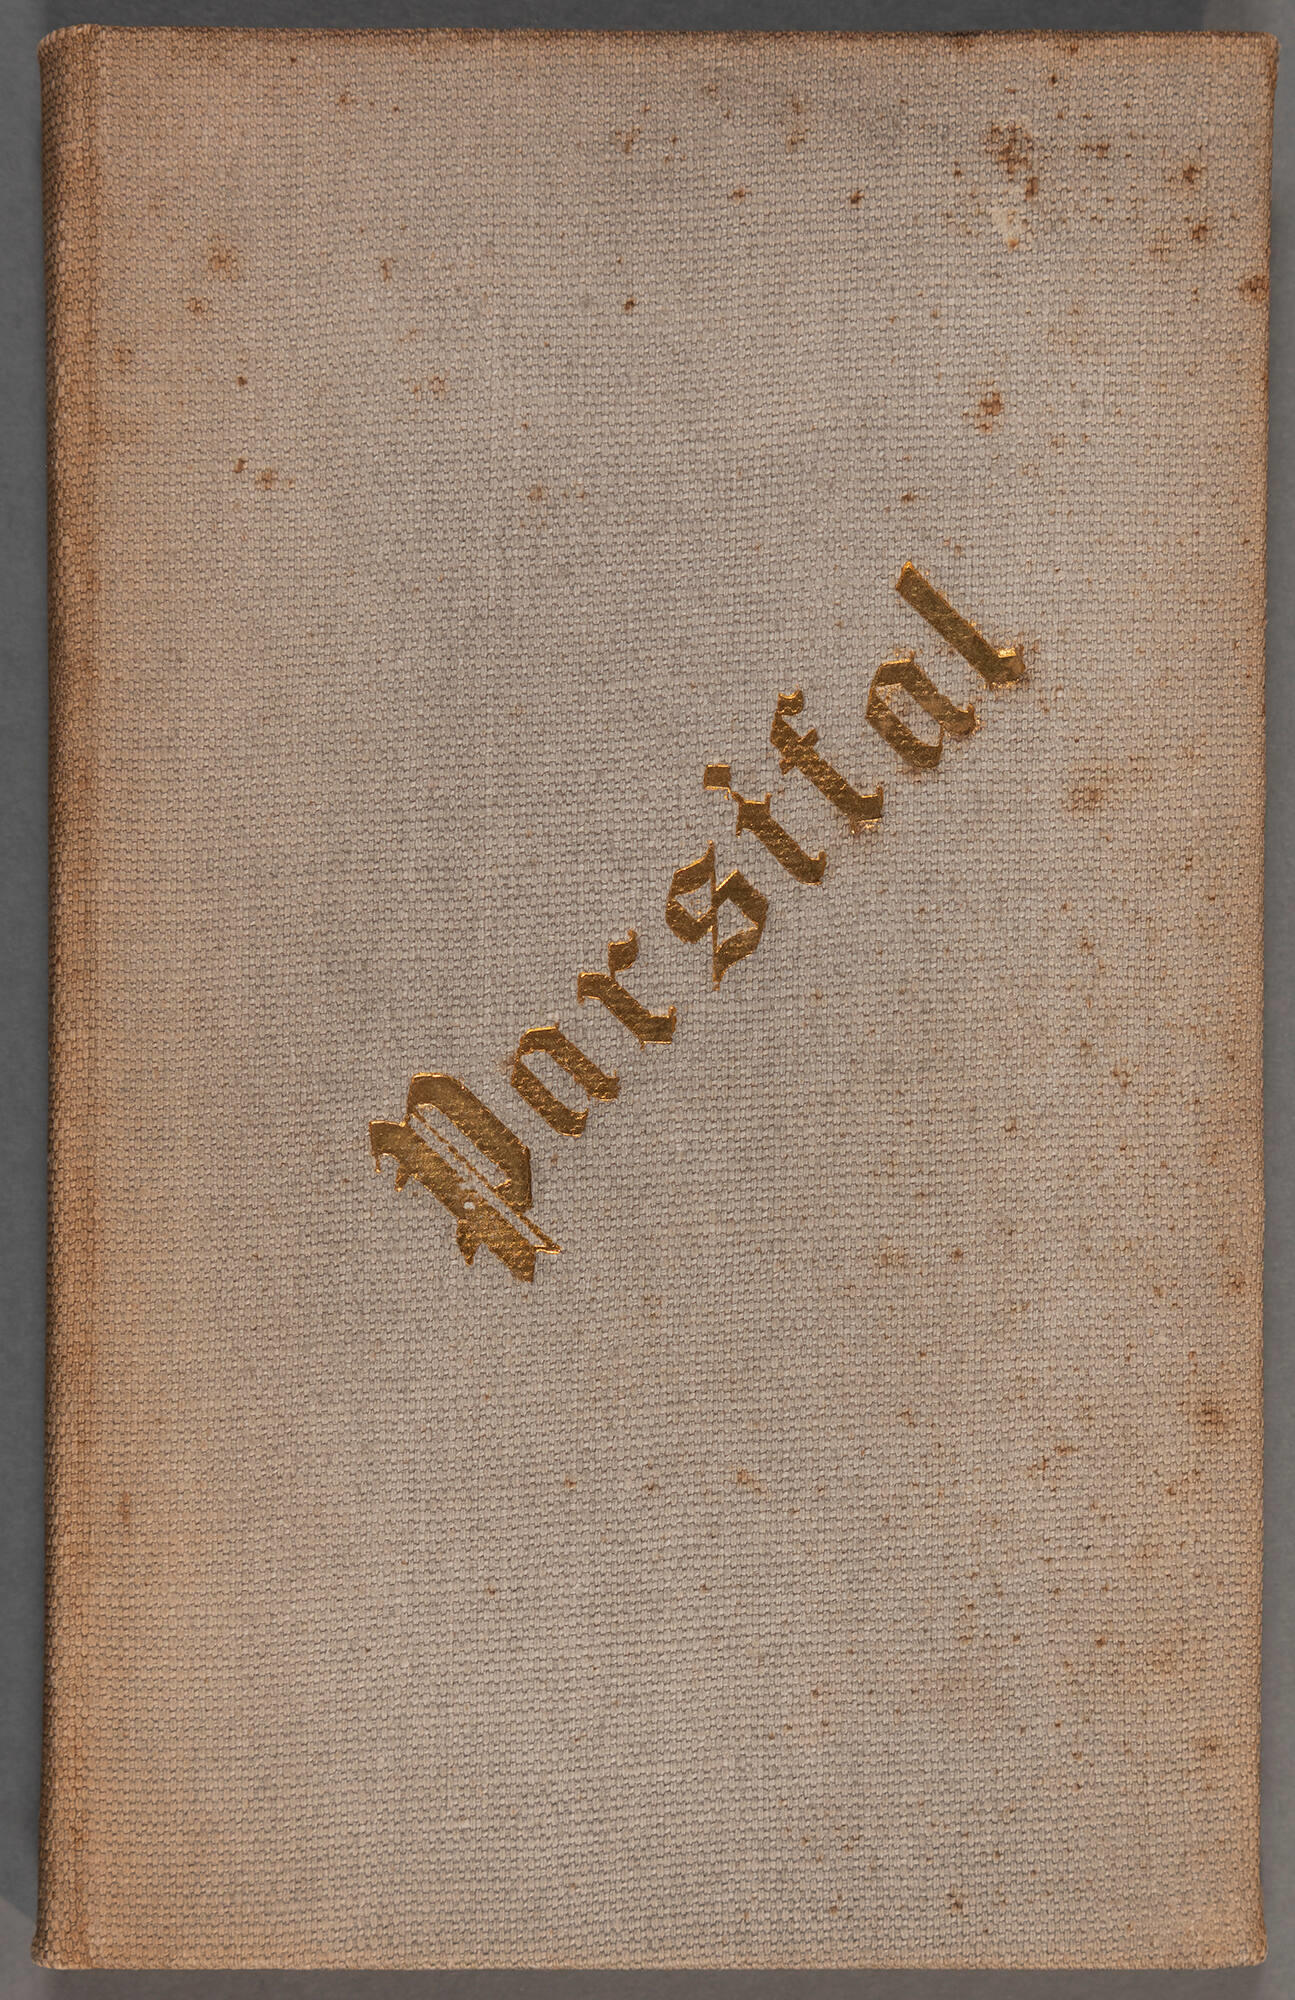 The word Pastifal on a page.